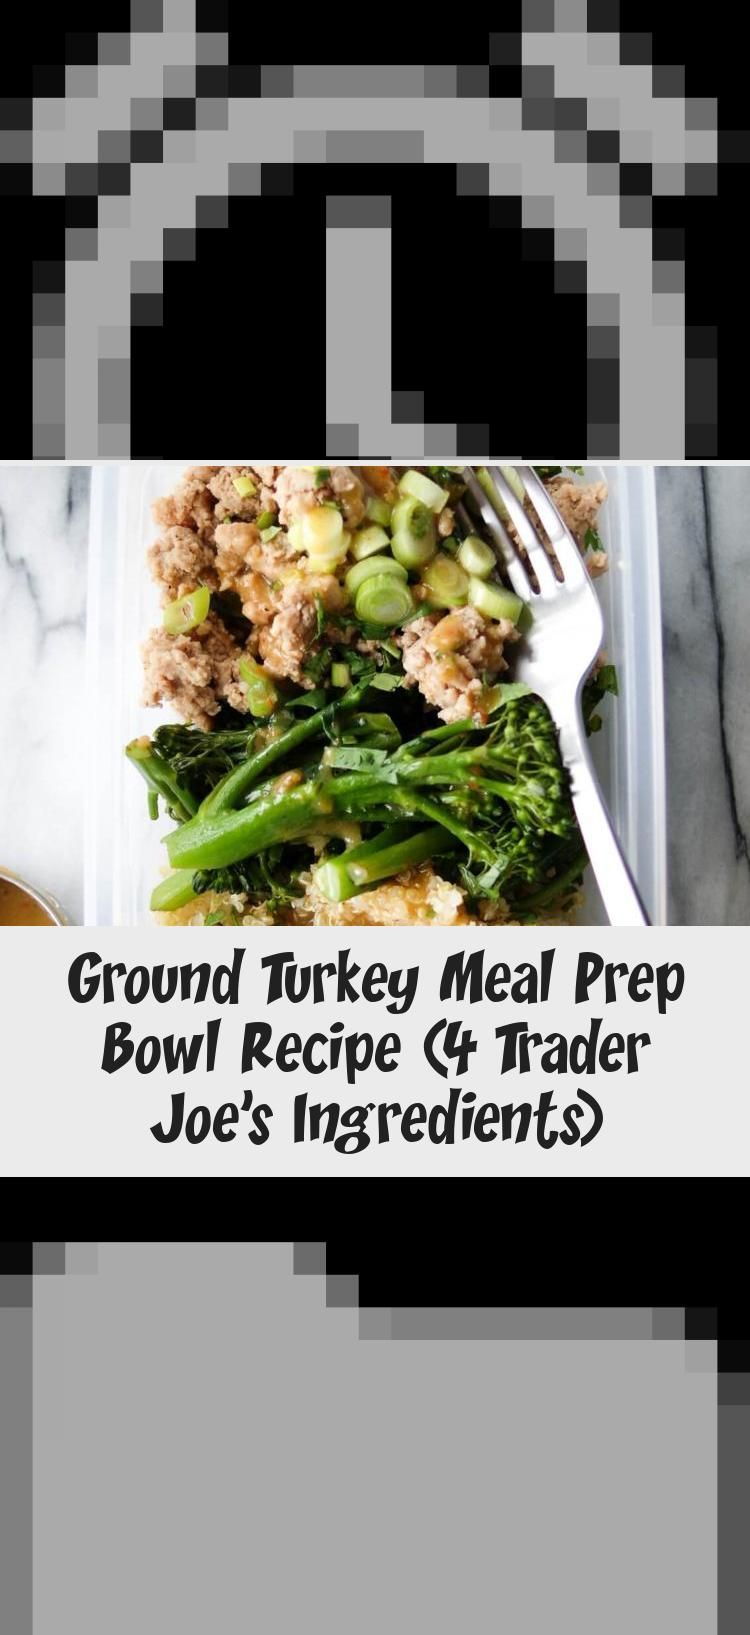 Trader Joes Ground Turkey Meal Prep Bowl Recipe  Looking for some trader joes meal prep ideas This ground turkey meal prep bowl recipe is so EASY  HEALTHY and takes just...